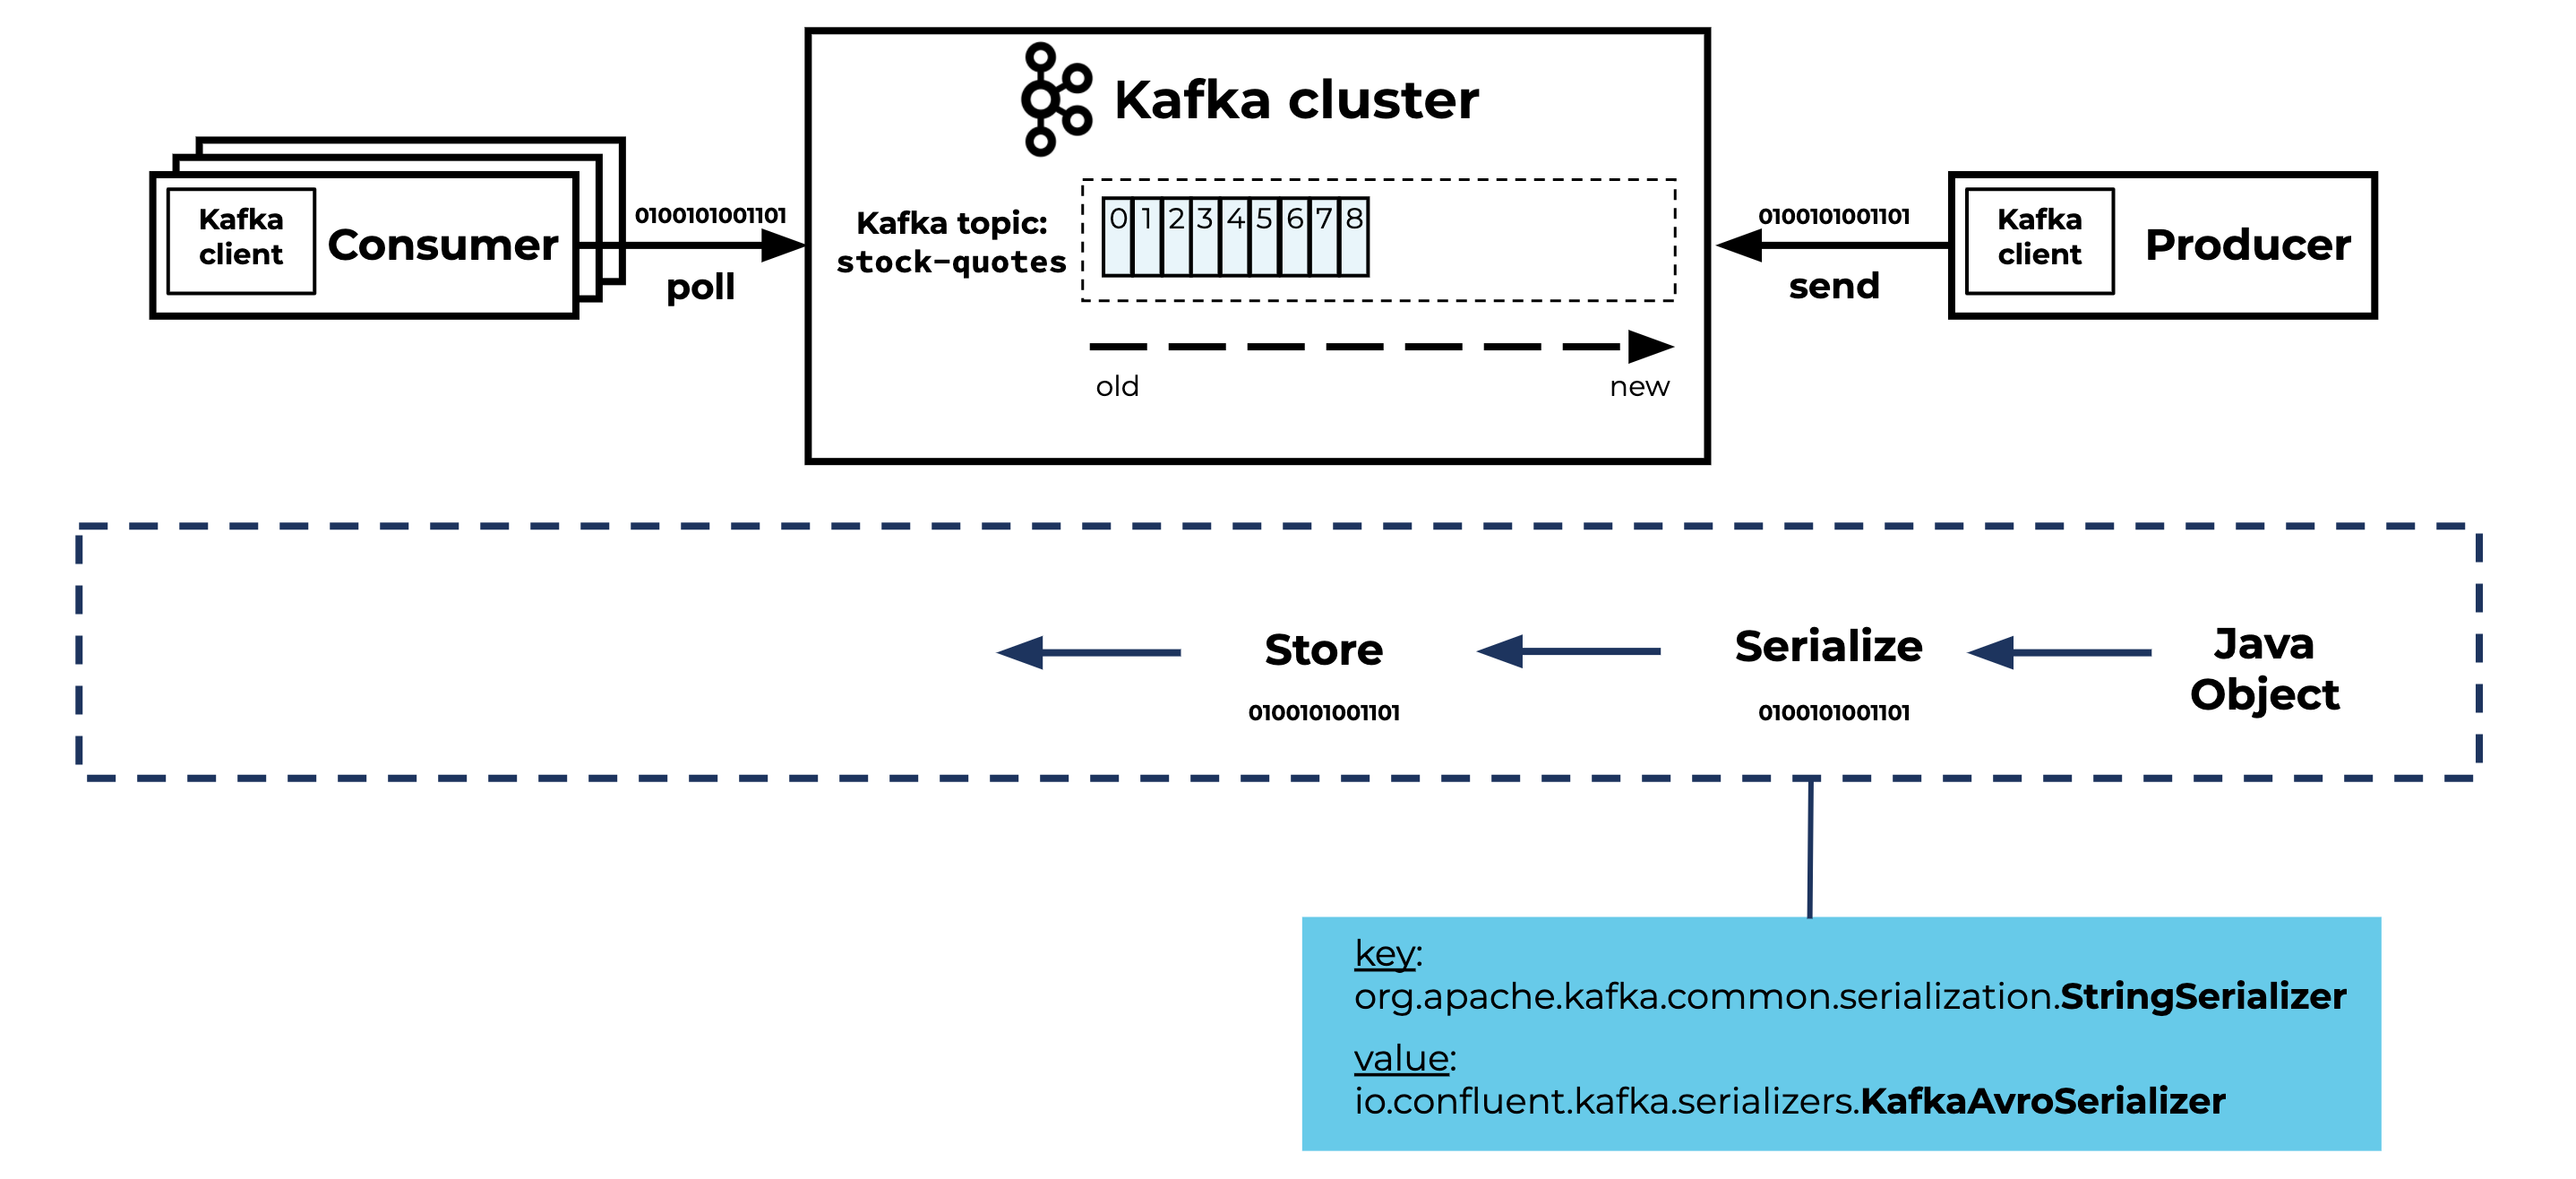 Kafka: Java Object ➝ Serialize ➝ Store